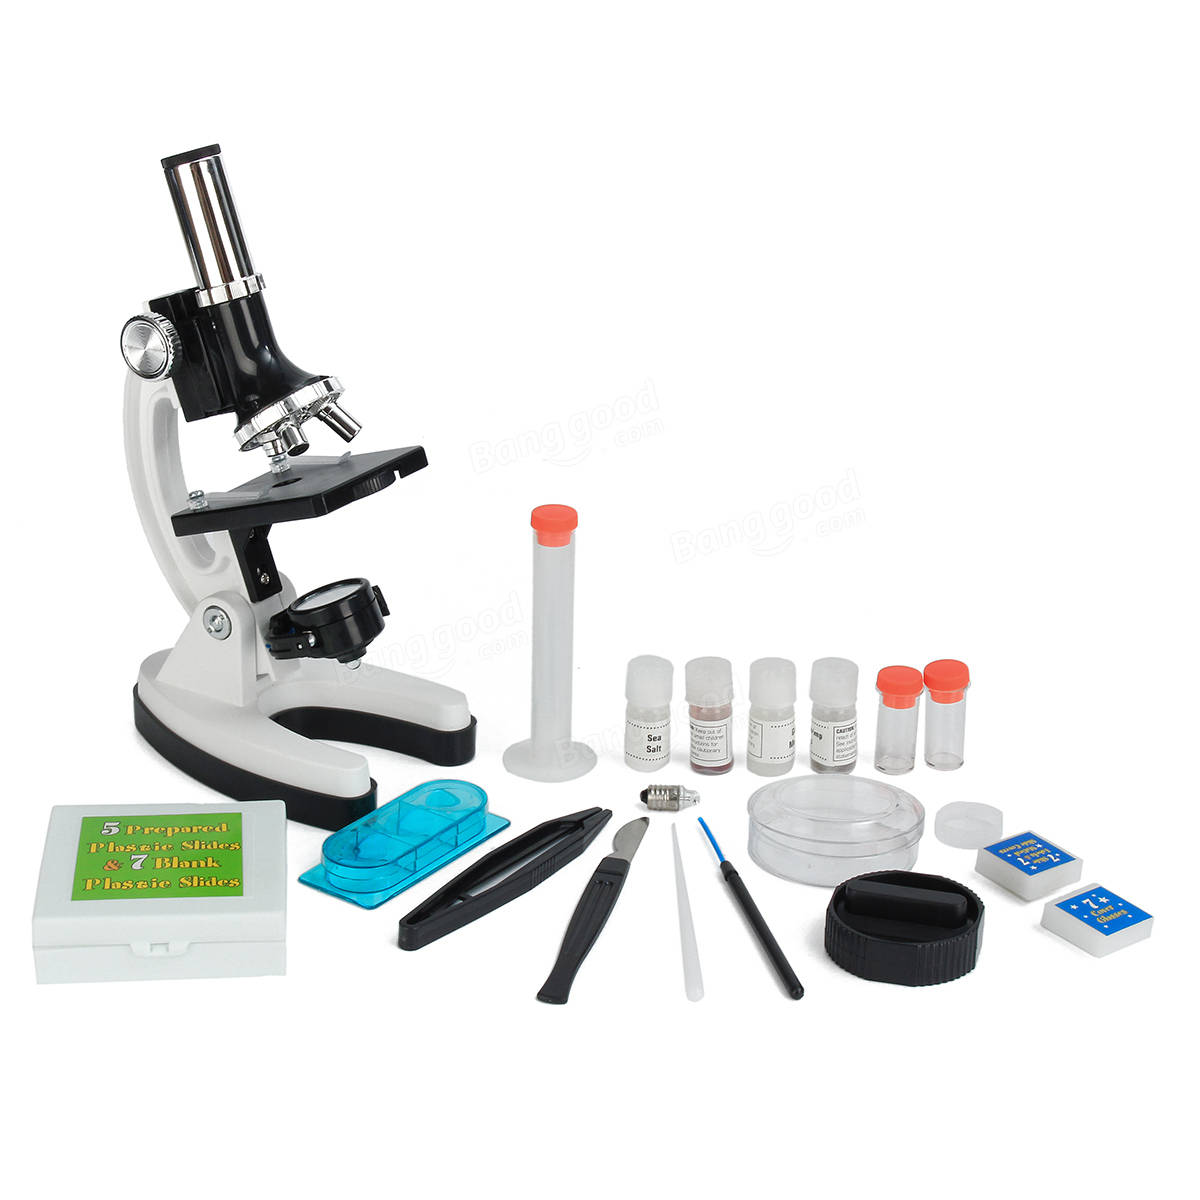 28Pcs Microscope Kit 300x 600x 1200x Magnification Educational Toy Gift for Kids